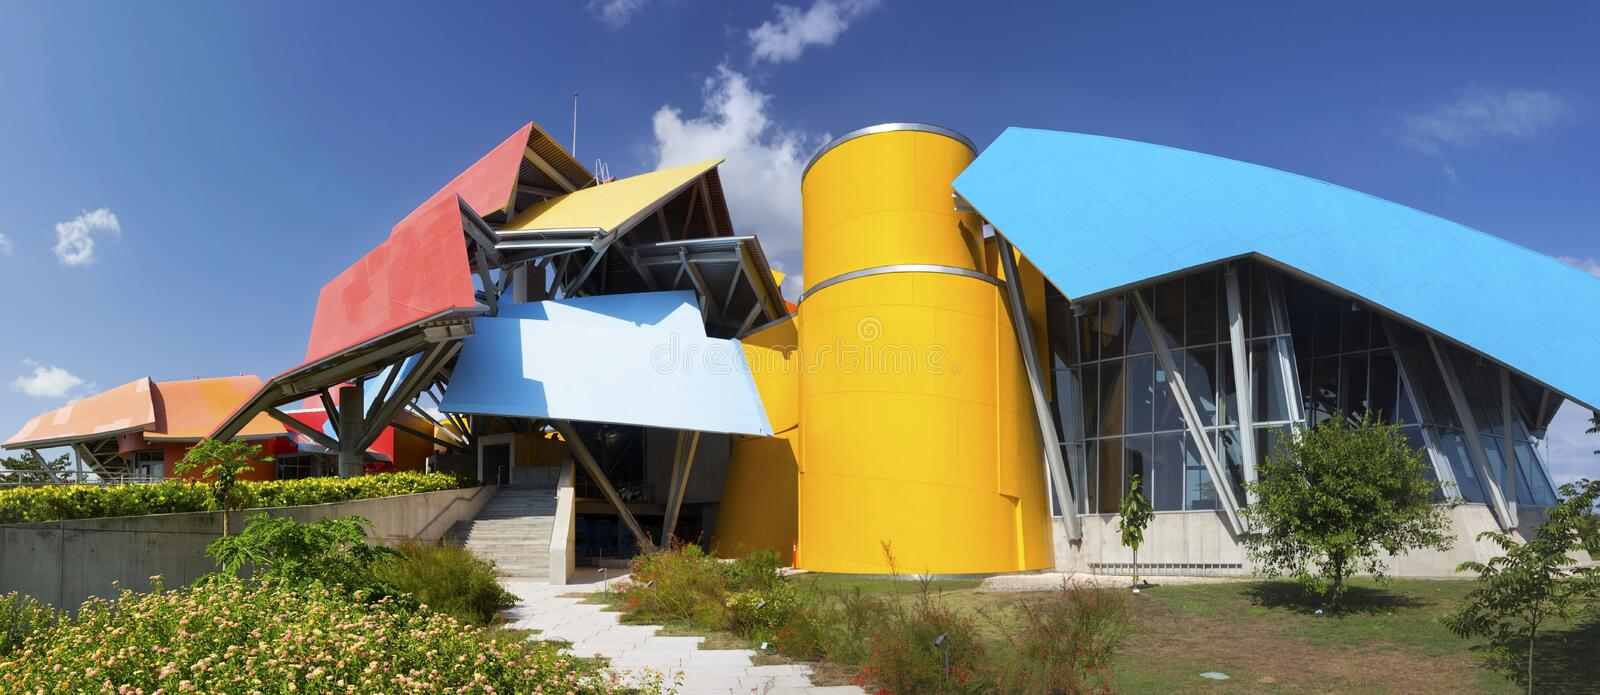 Panama City Biomuseo Museum of Natural History Modern Architecture Building Exterior Panoramic View stock photo